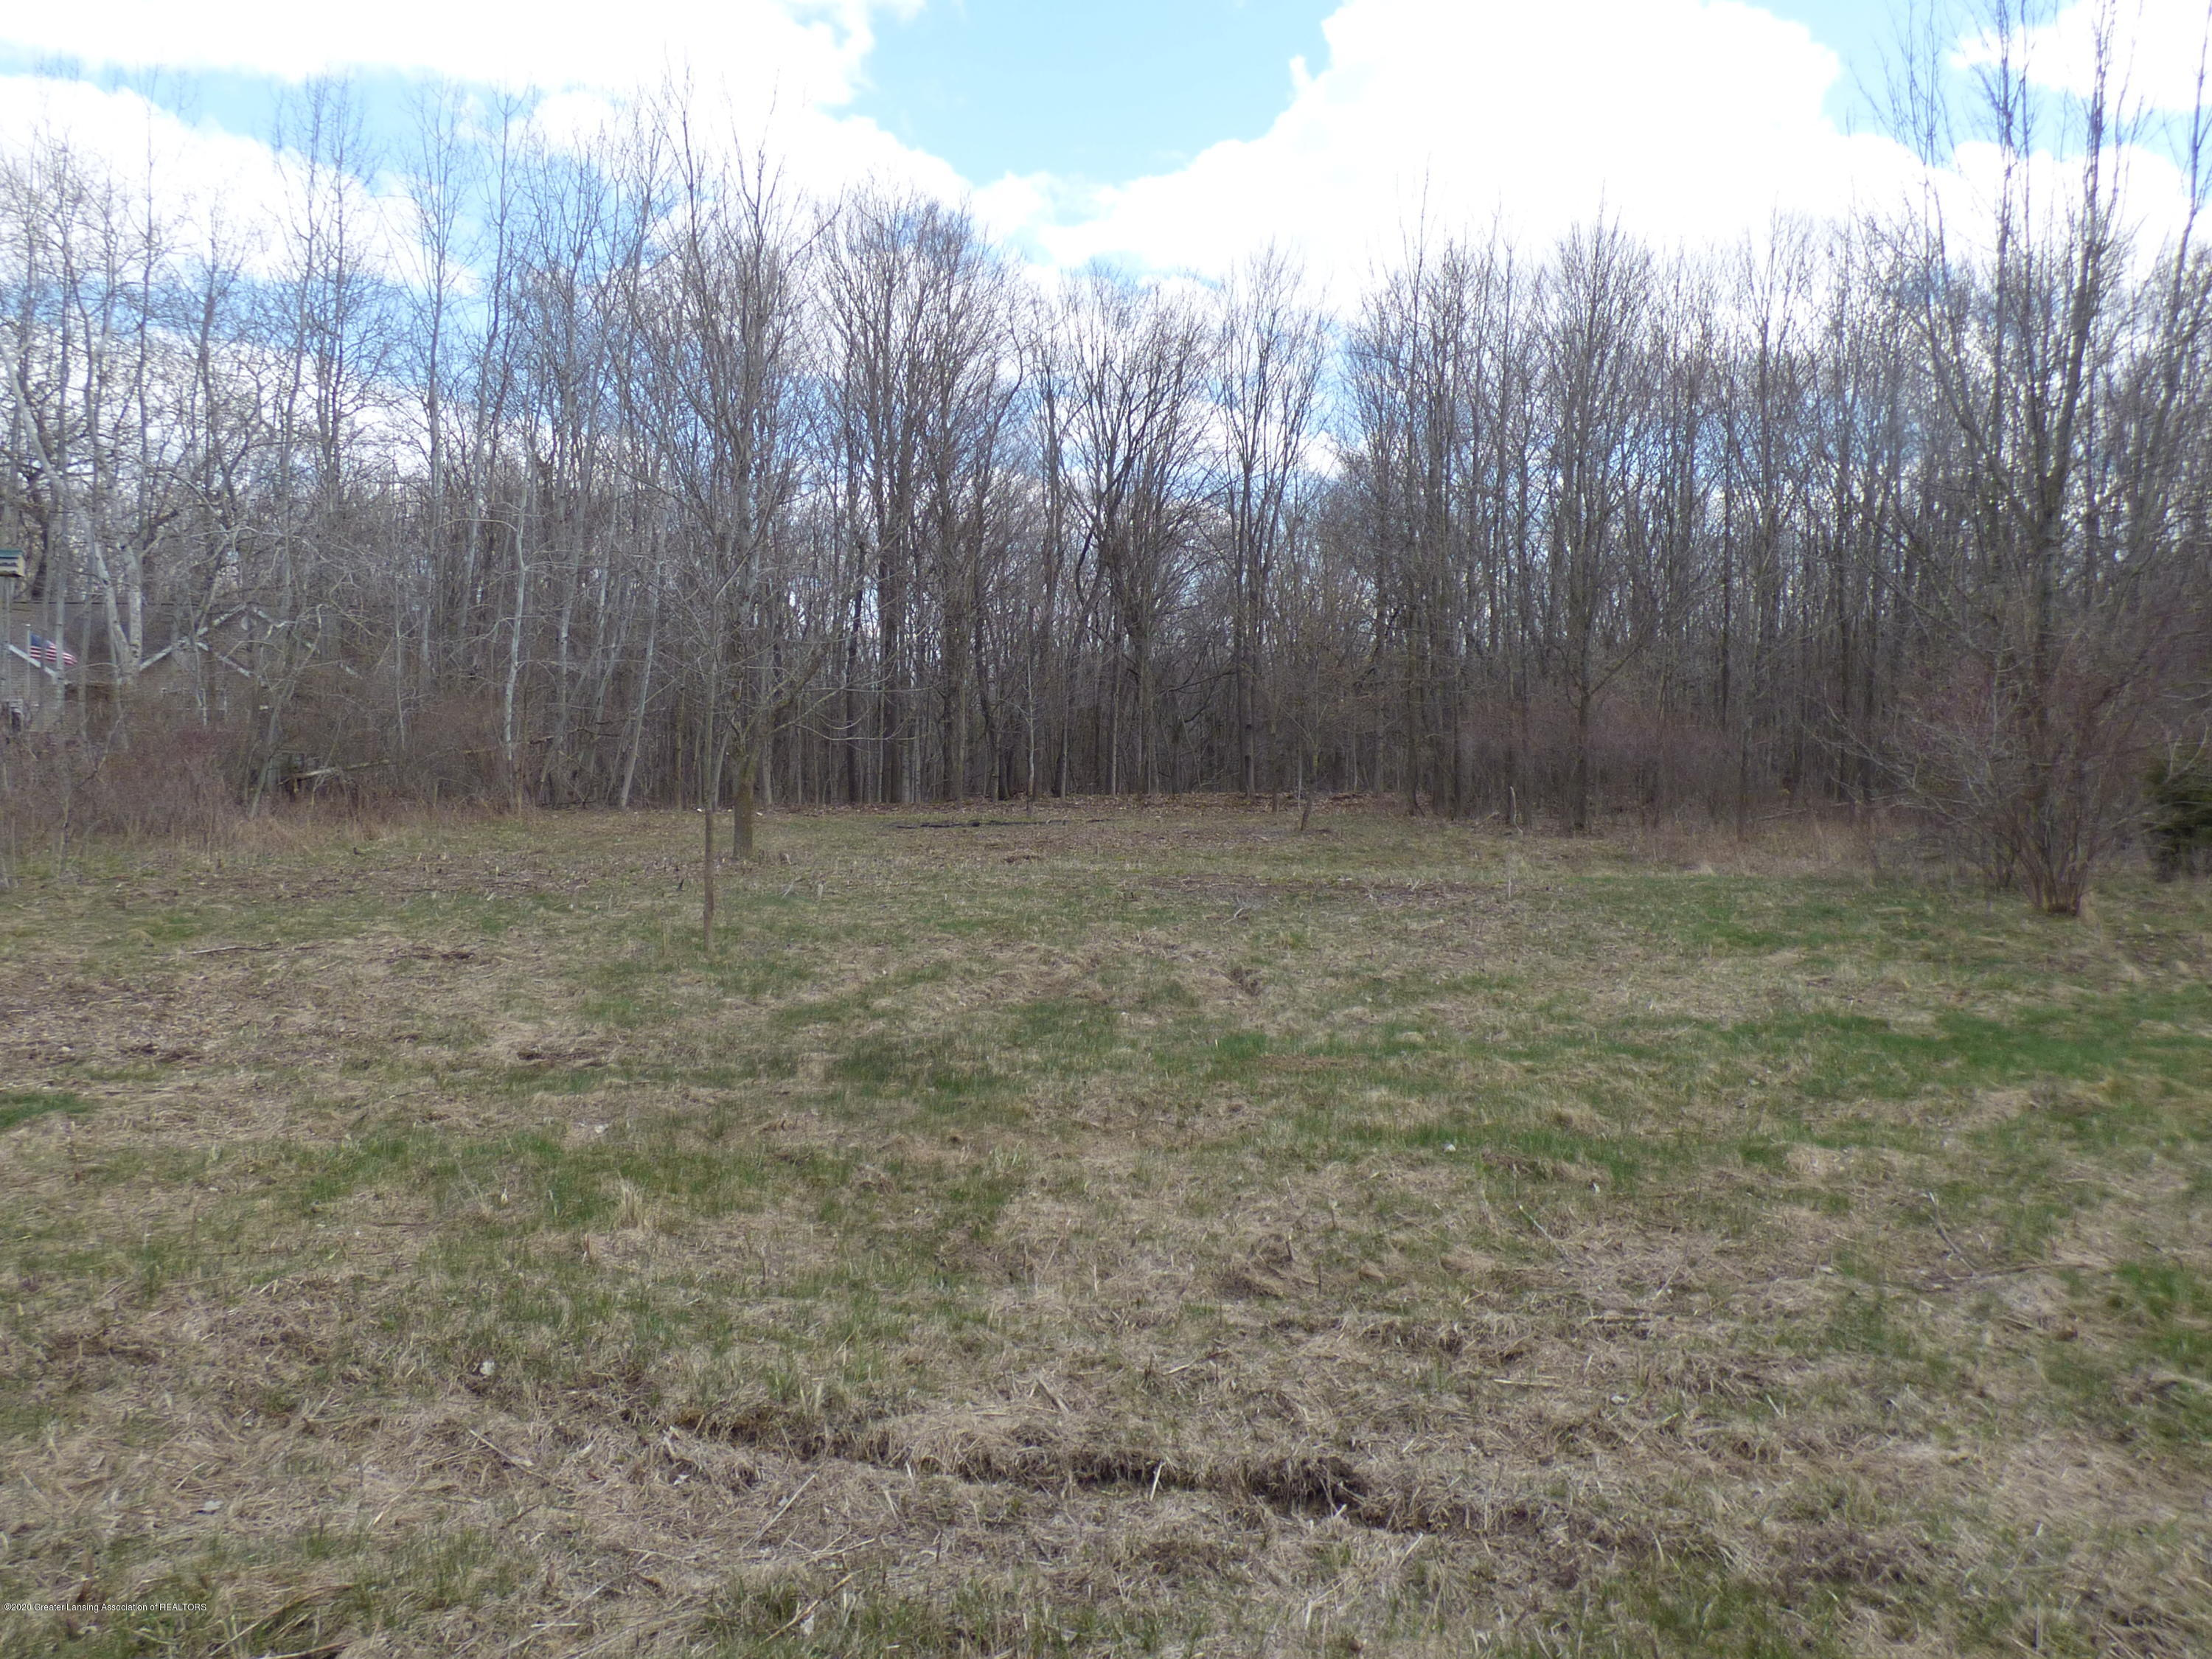 Lot #4 Lakeside Dr - Update Spring Cleared Lot - 1